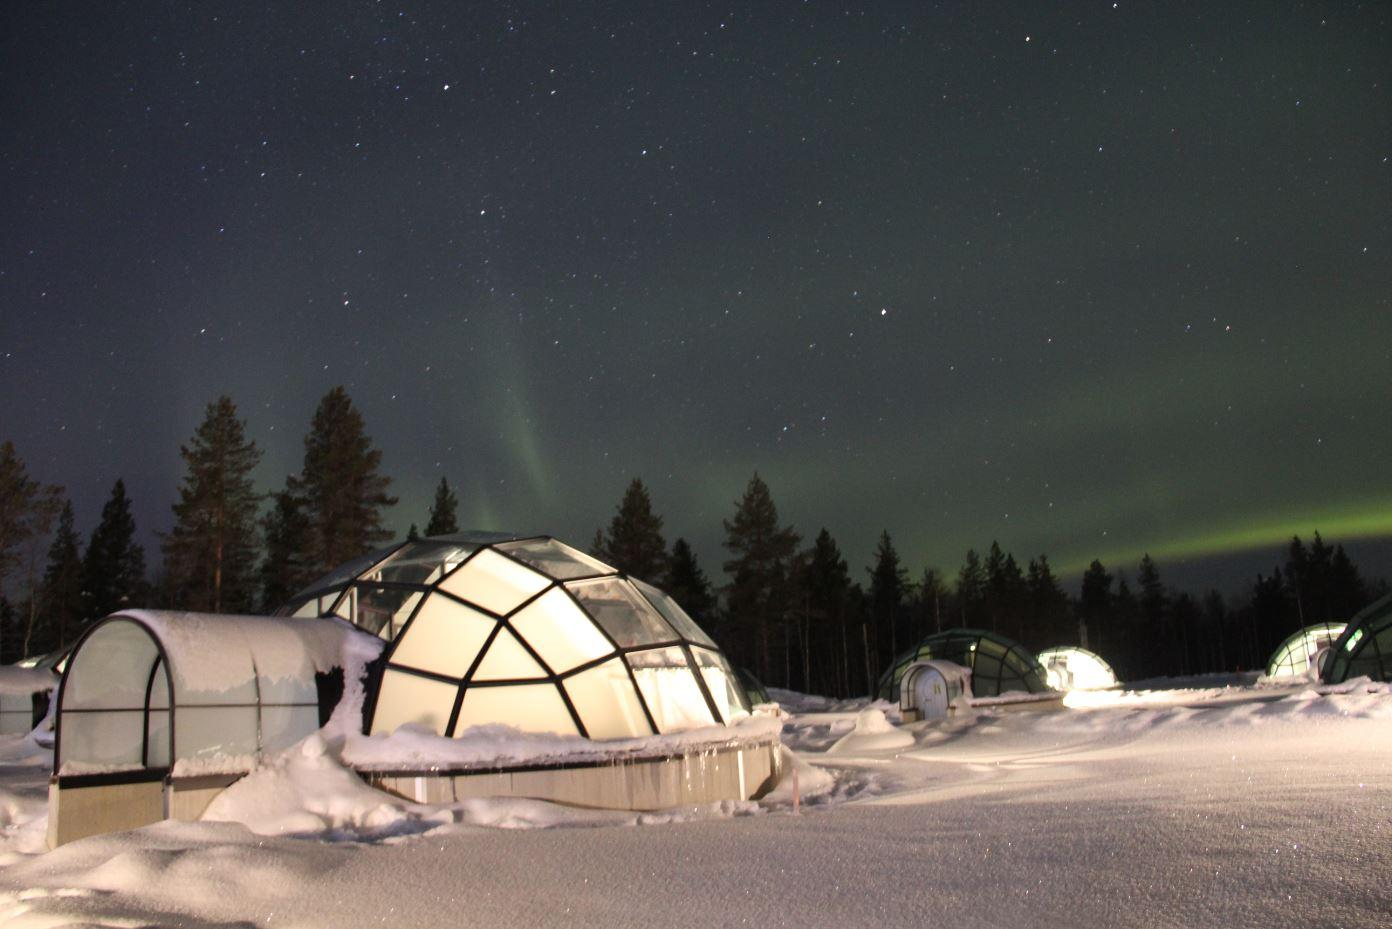 You could stay at a Northern Lights Resort with Glass Igloos